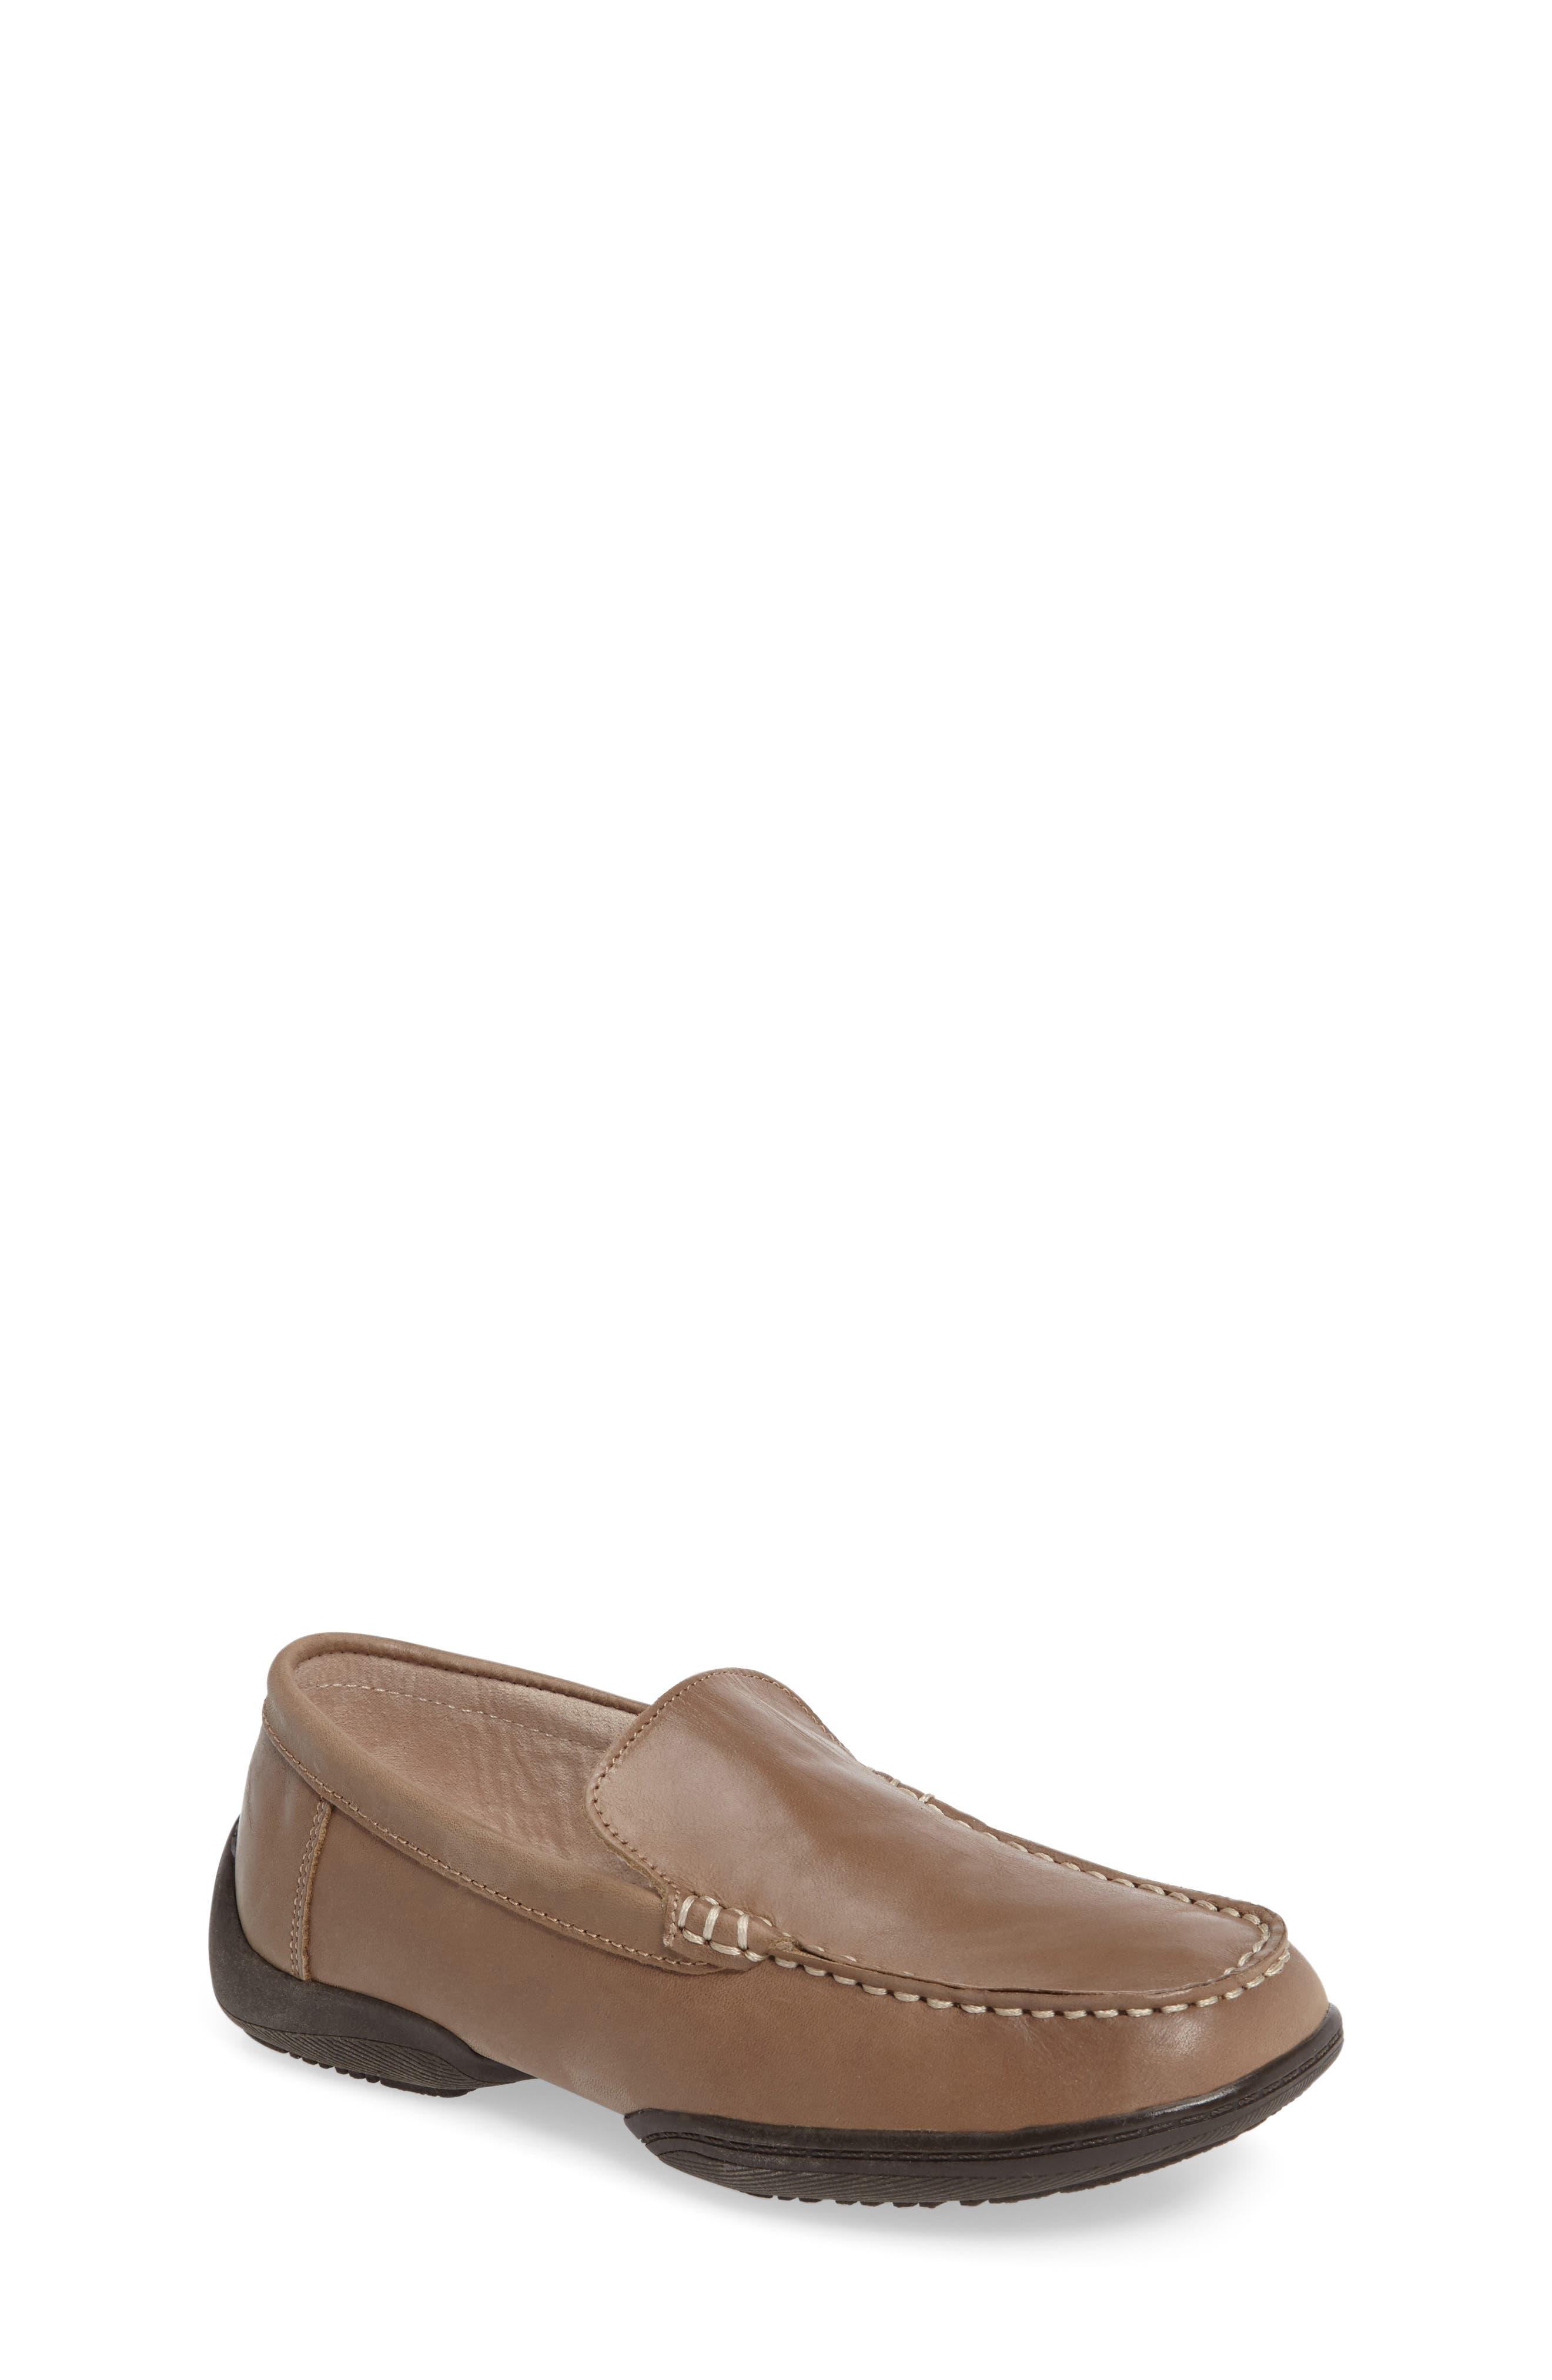 REACTION KENNETH COLE Driving Dime Moccasin